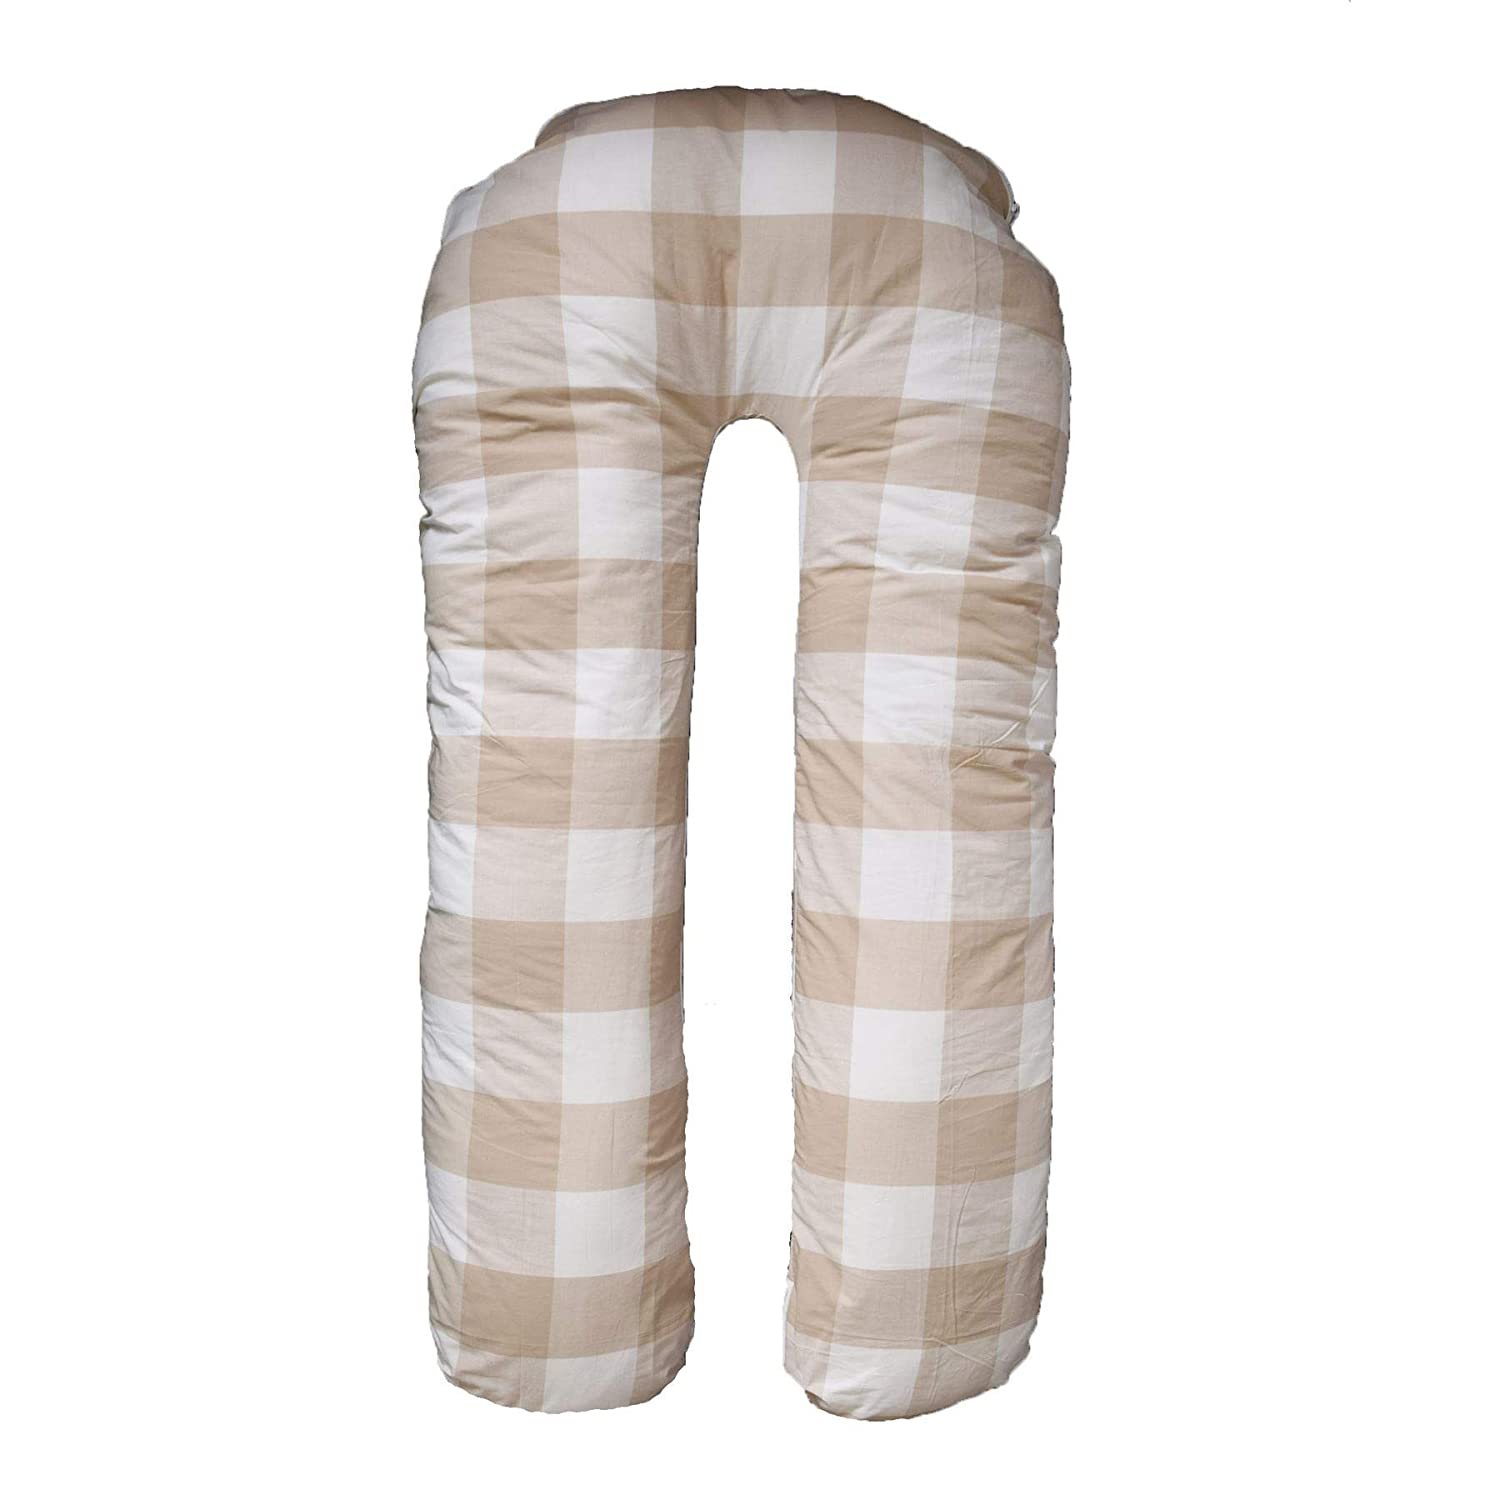 SleepyNights U SHAPE PREGNANCY MATERNITY WEDGE PILLOW REMOVABLE PRINTED REVERSIBLE COVER – BEIGE CHECK/STRIPES